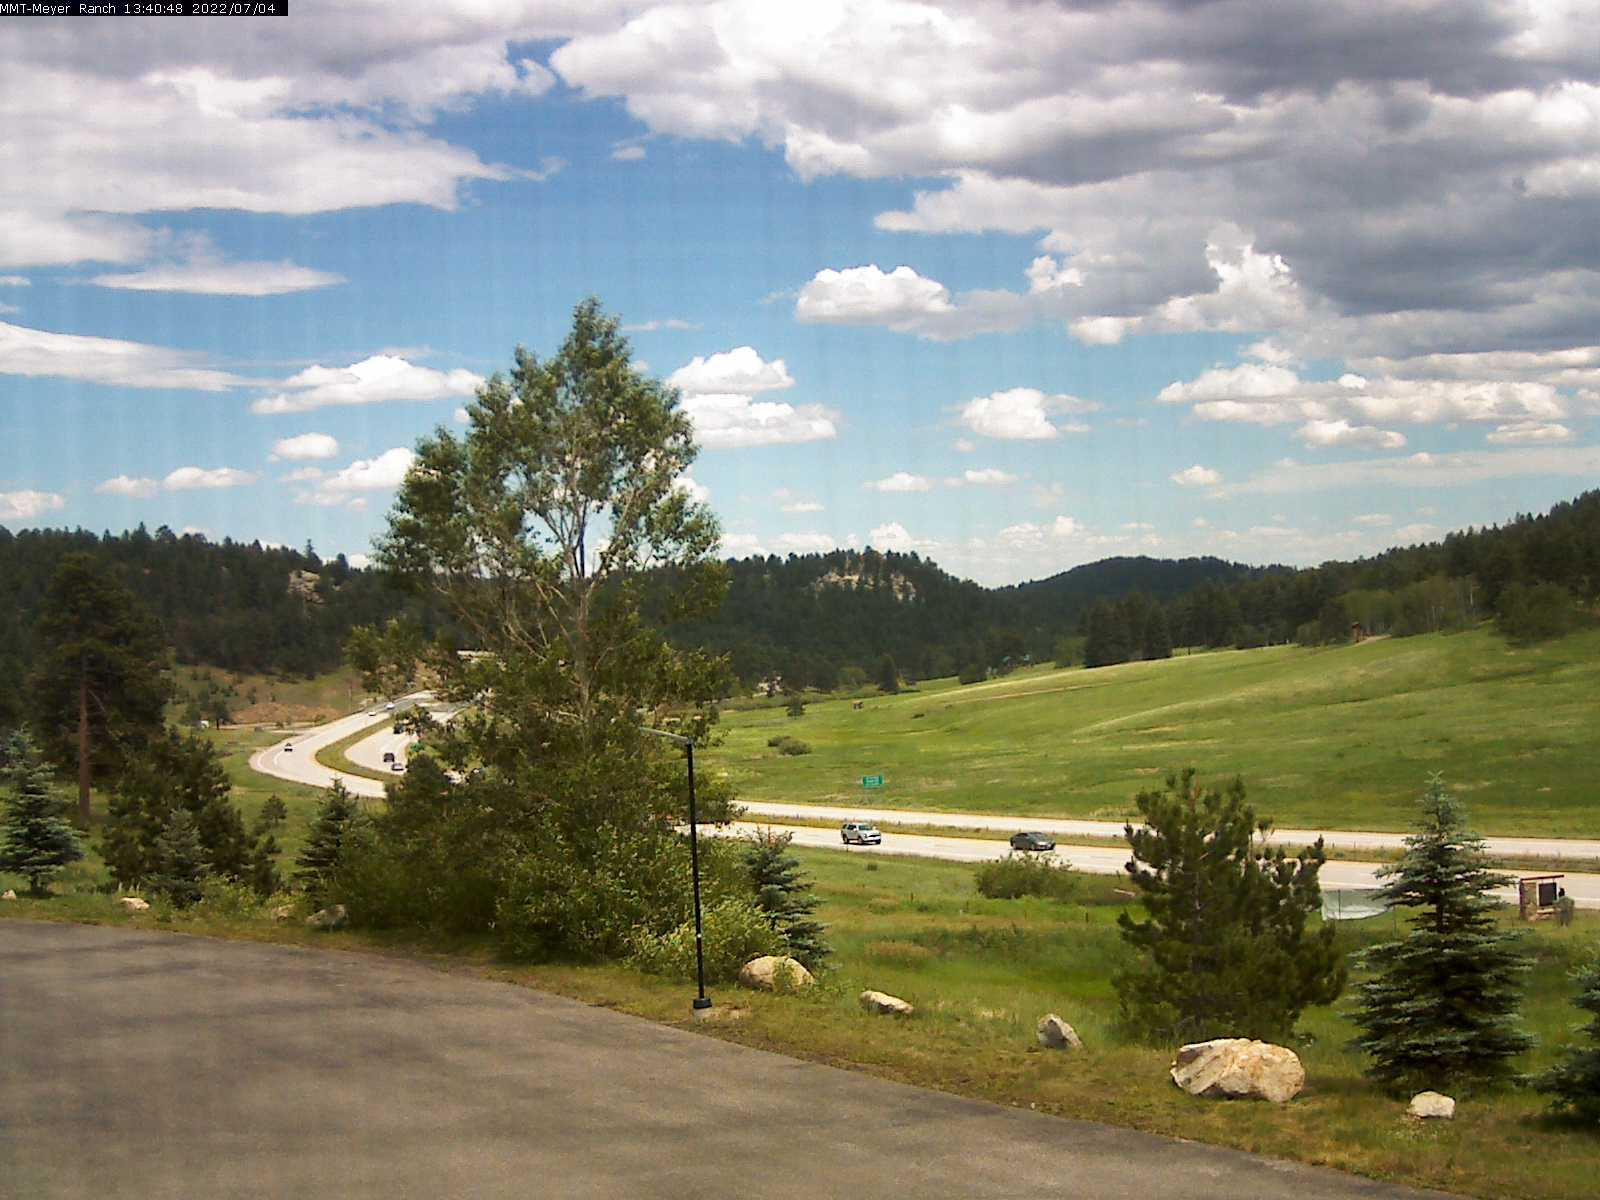 Meyer Ranch Sledding Hill Our Lady of the Pines webcam